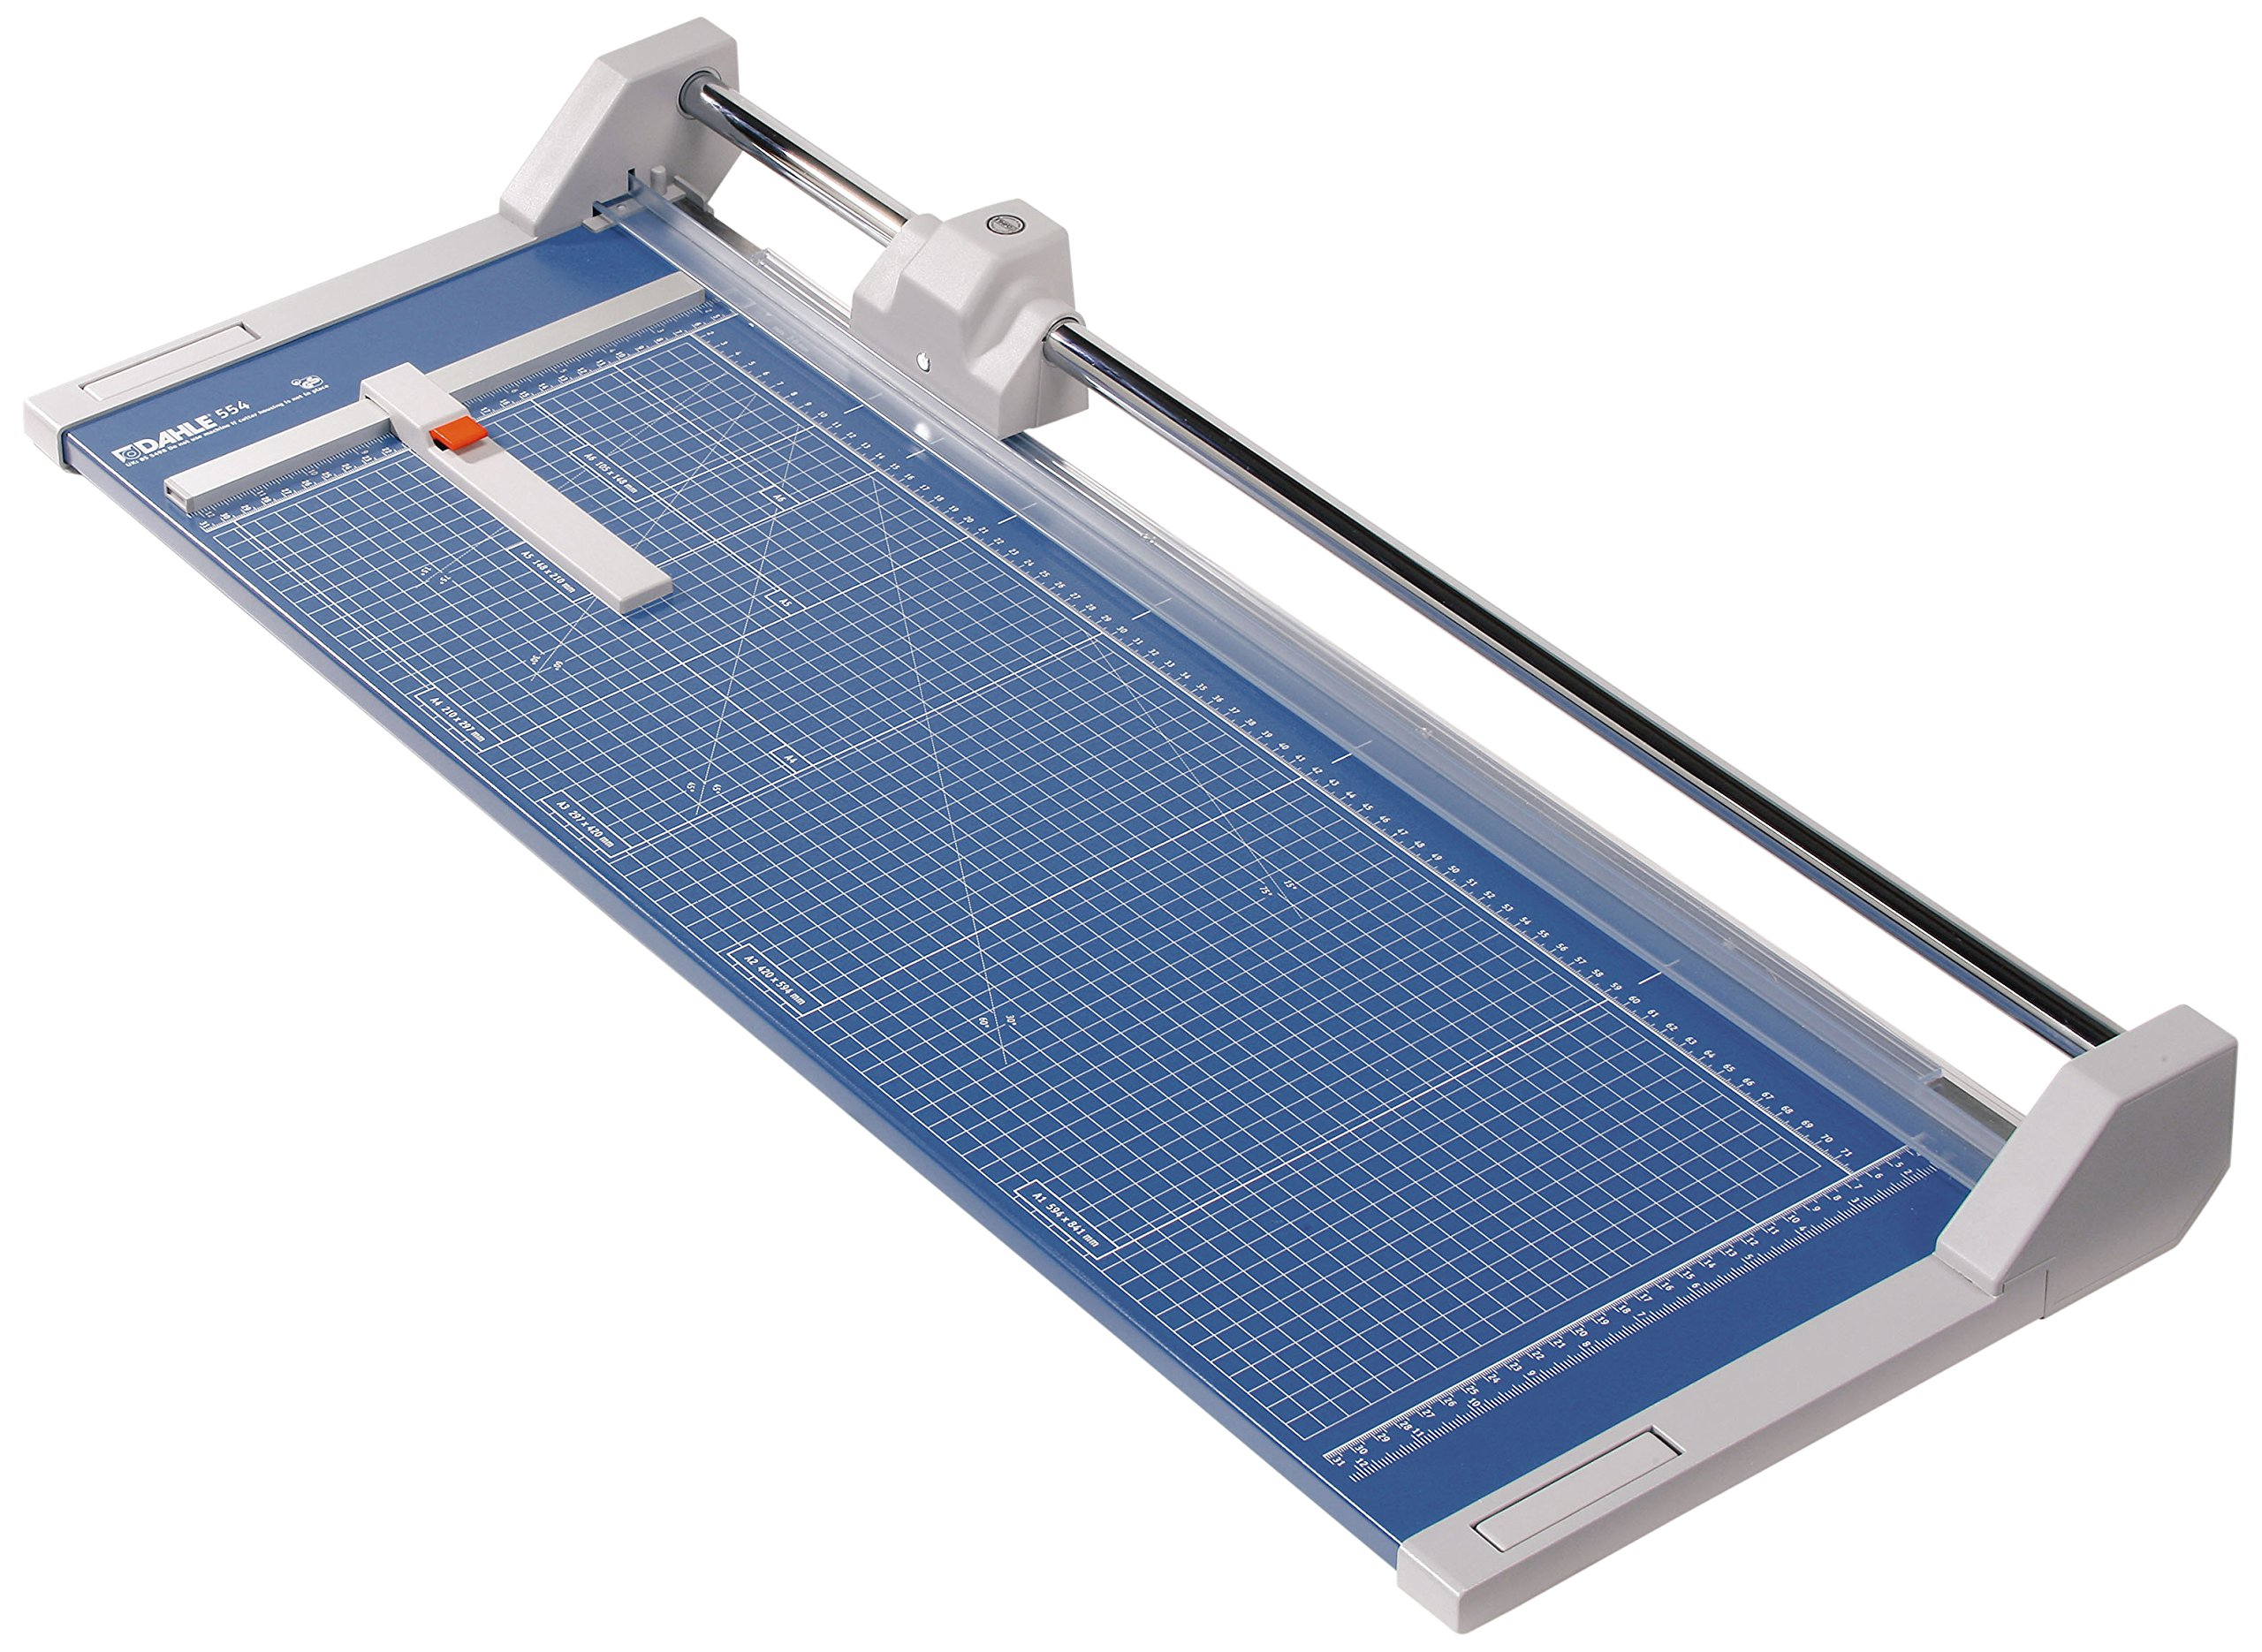 DAHLE PREMIUM ROTARY A2 TRIMMER 720MM [Office Product]